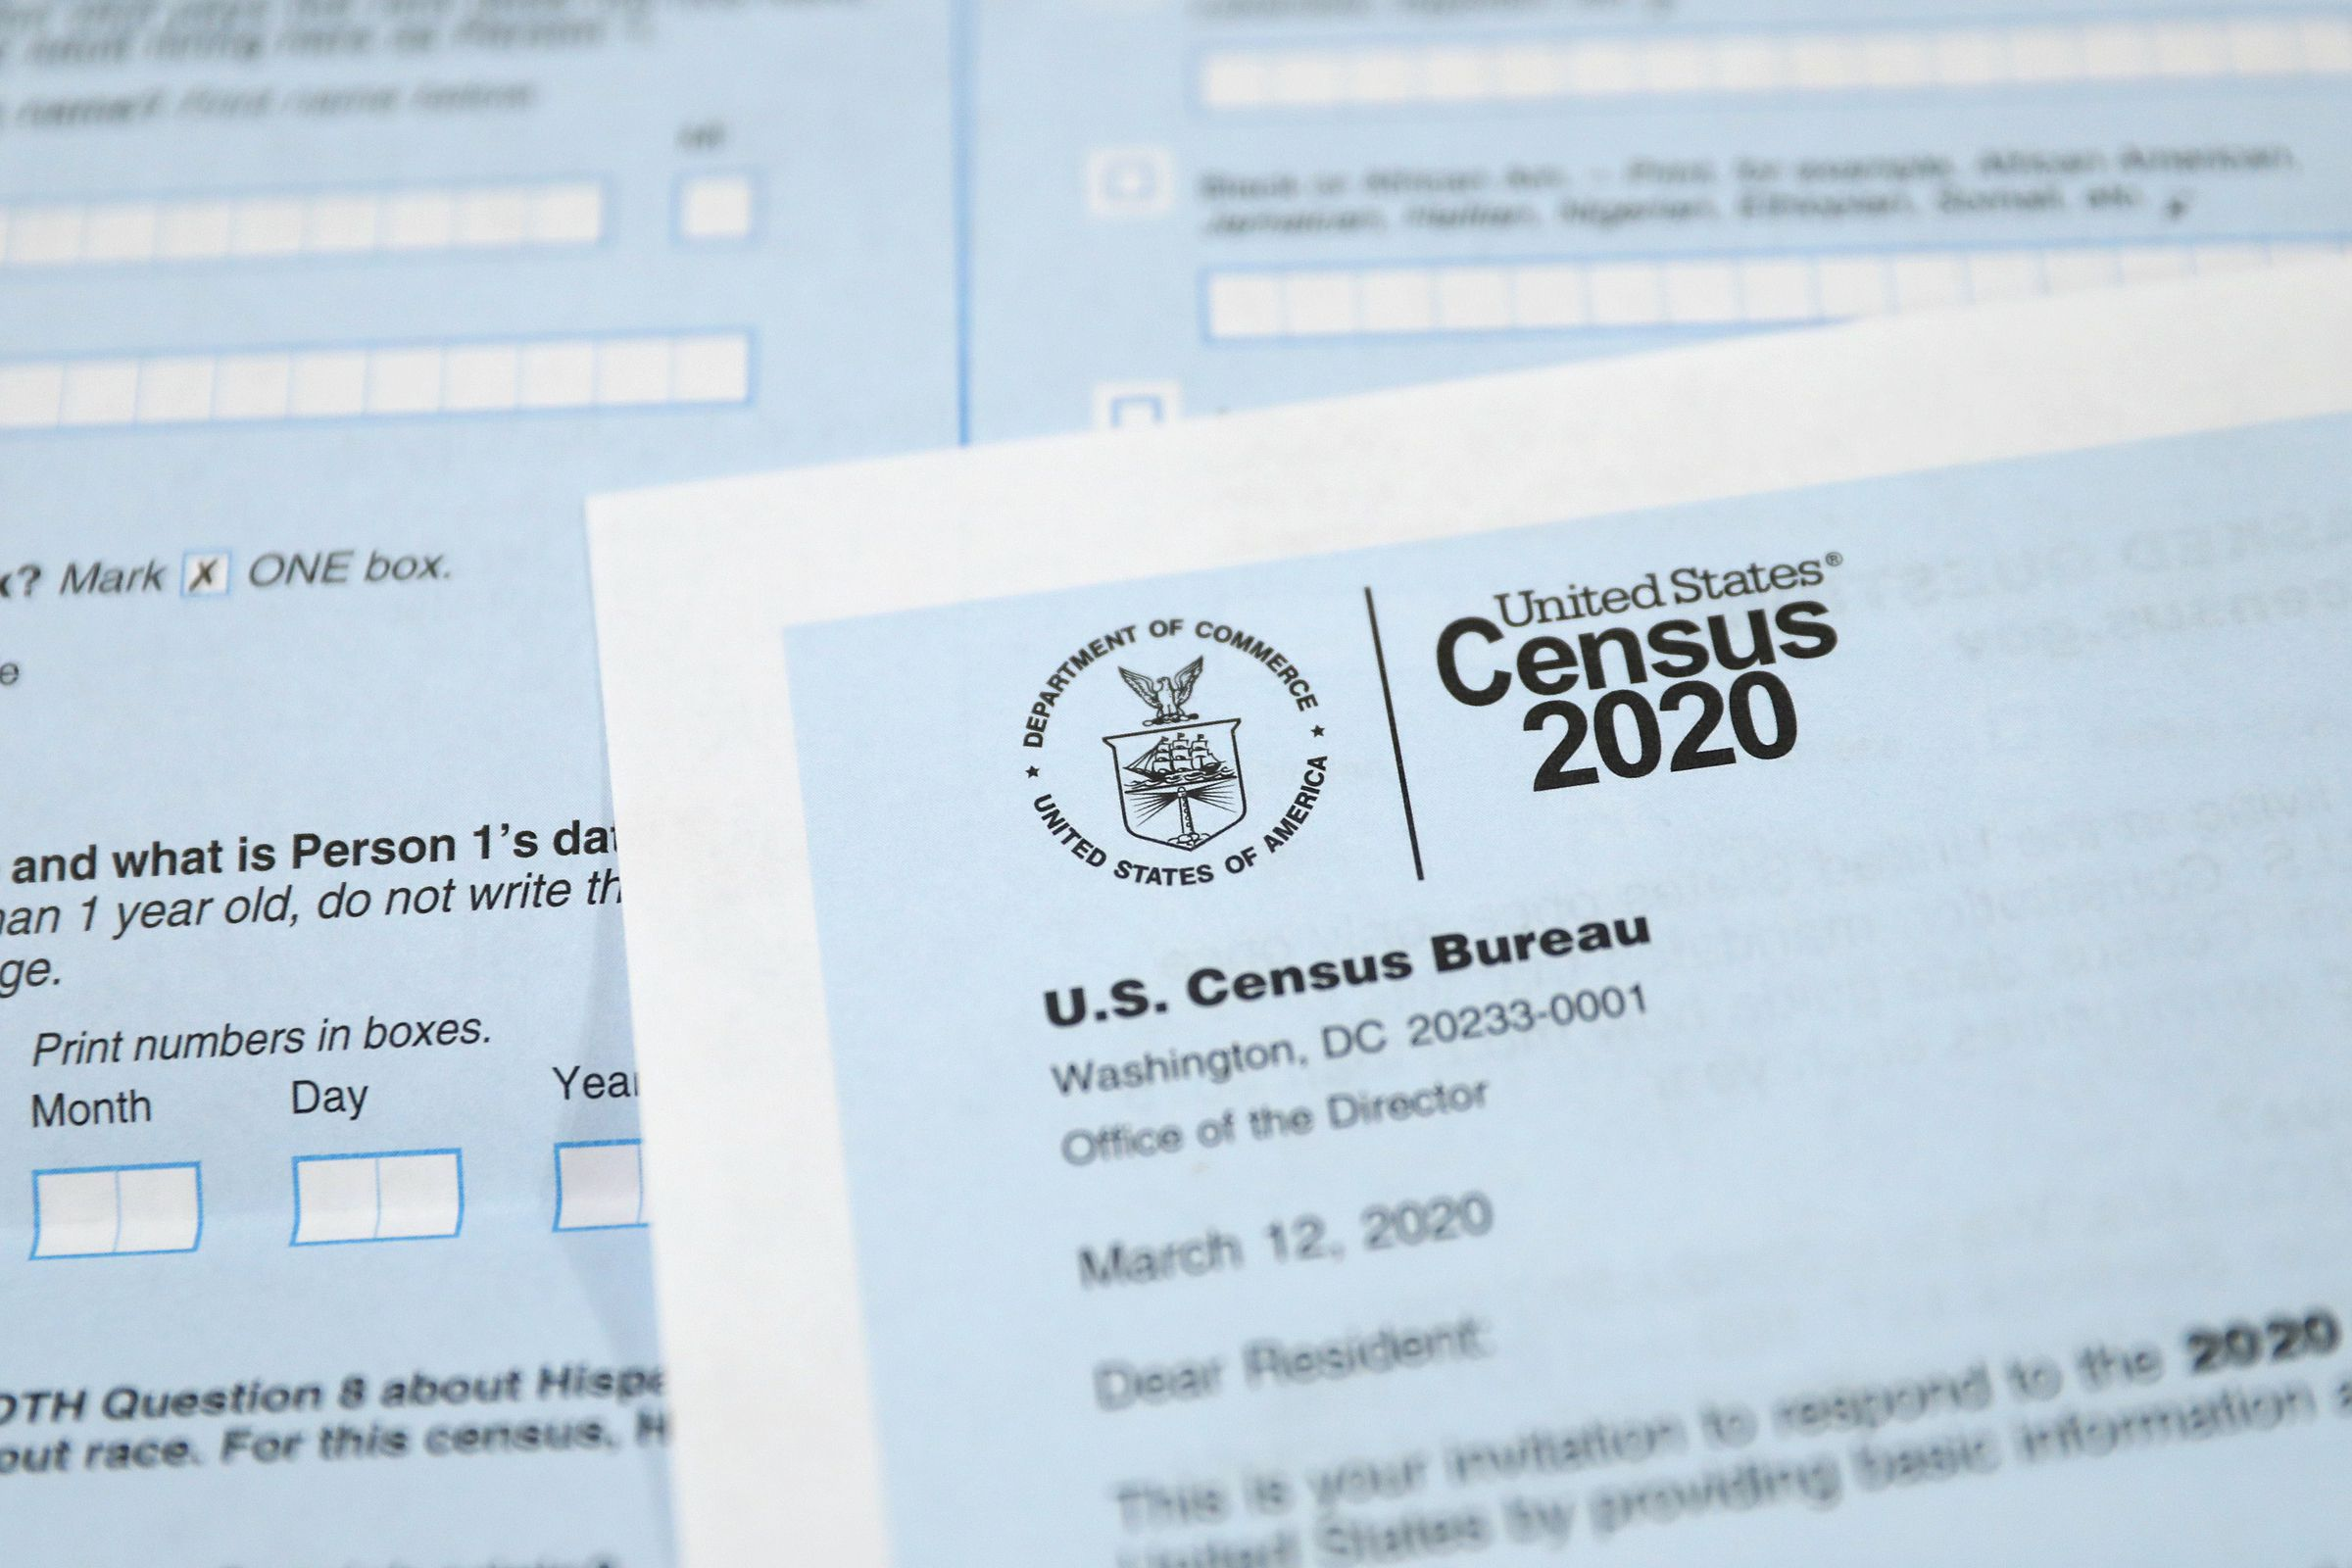 levittownnow.com: Takeaways From New PA Census Data & What It Means For Redistricting